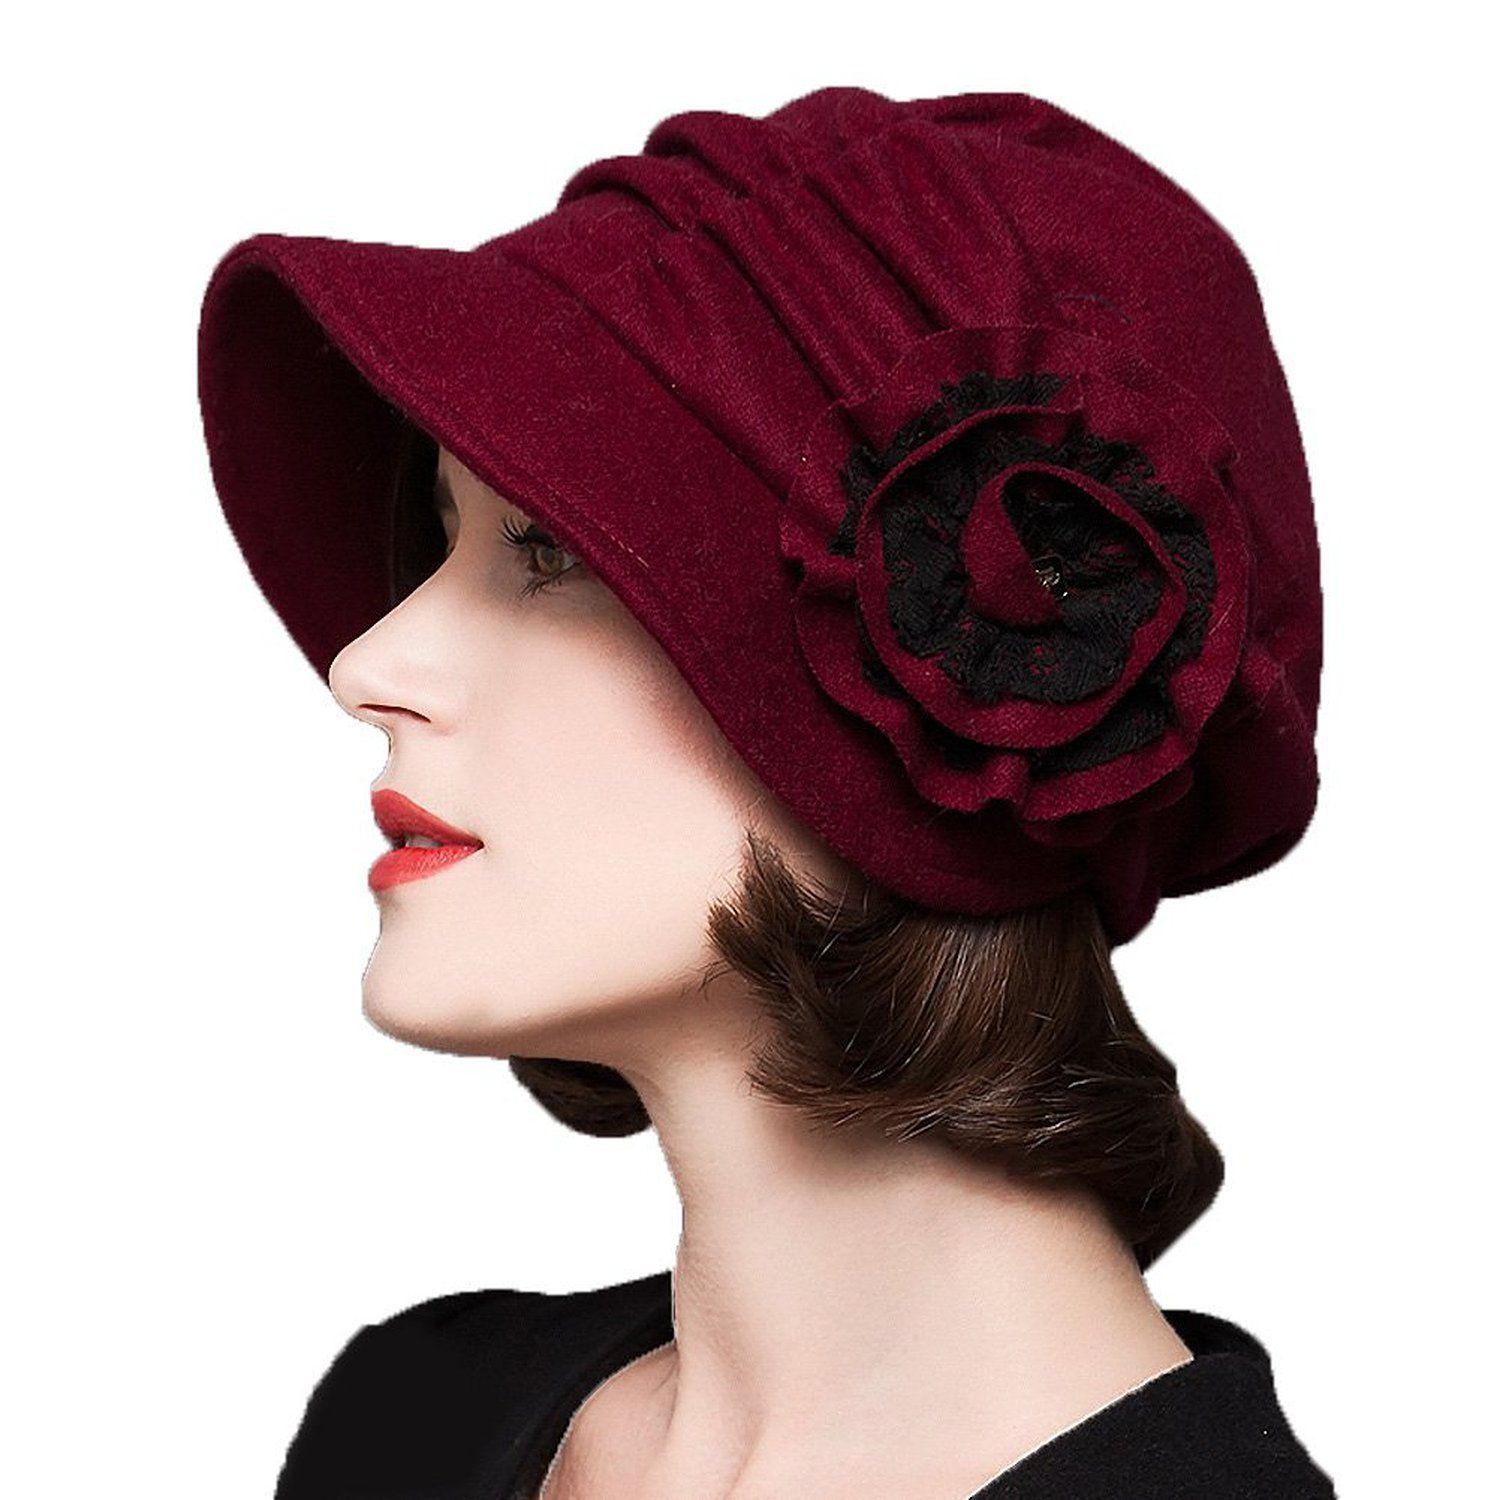 1920s Style Hats Decorative Flowers Wool Beret  28.40 AT vintagedancer.com ad9c321405a